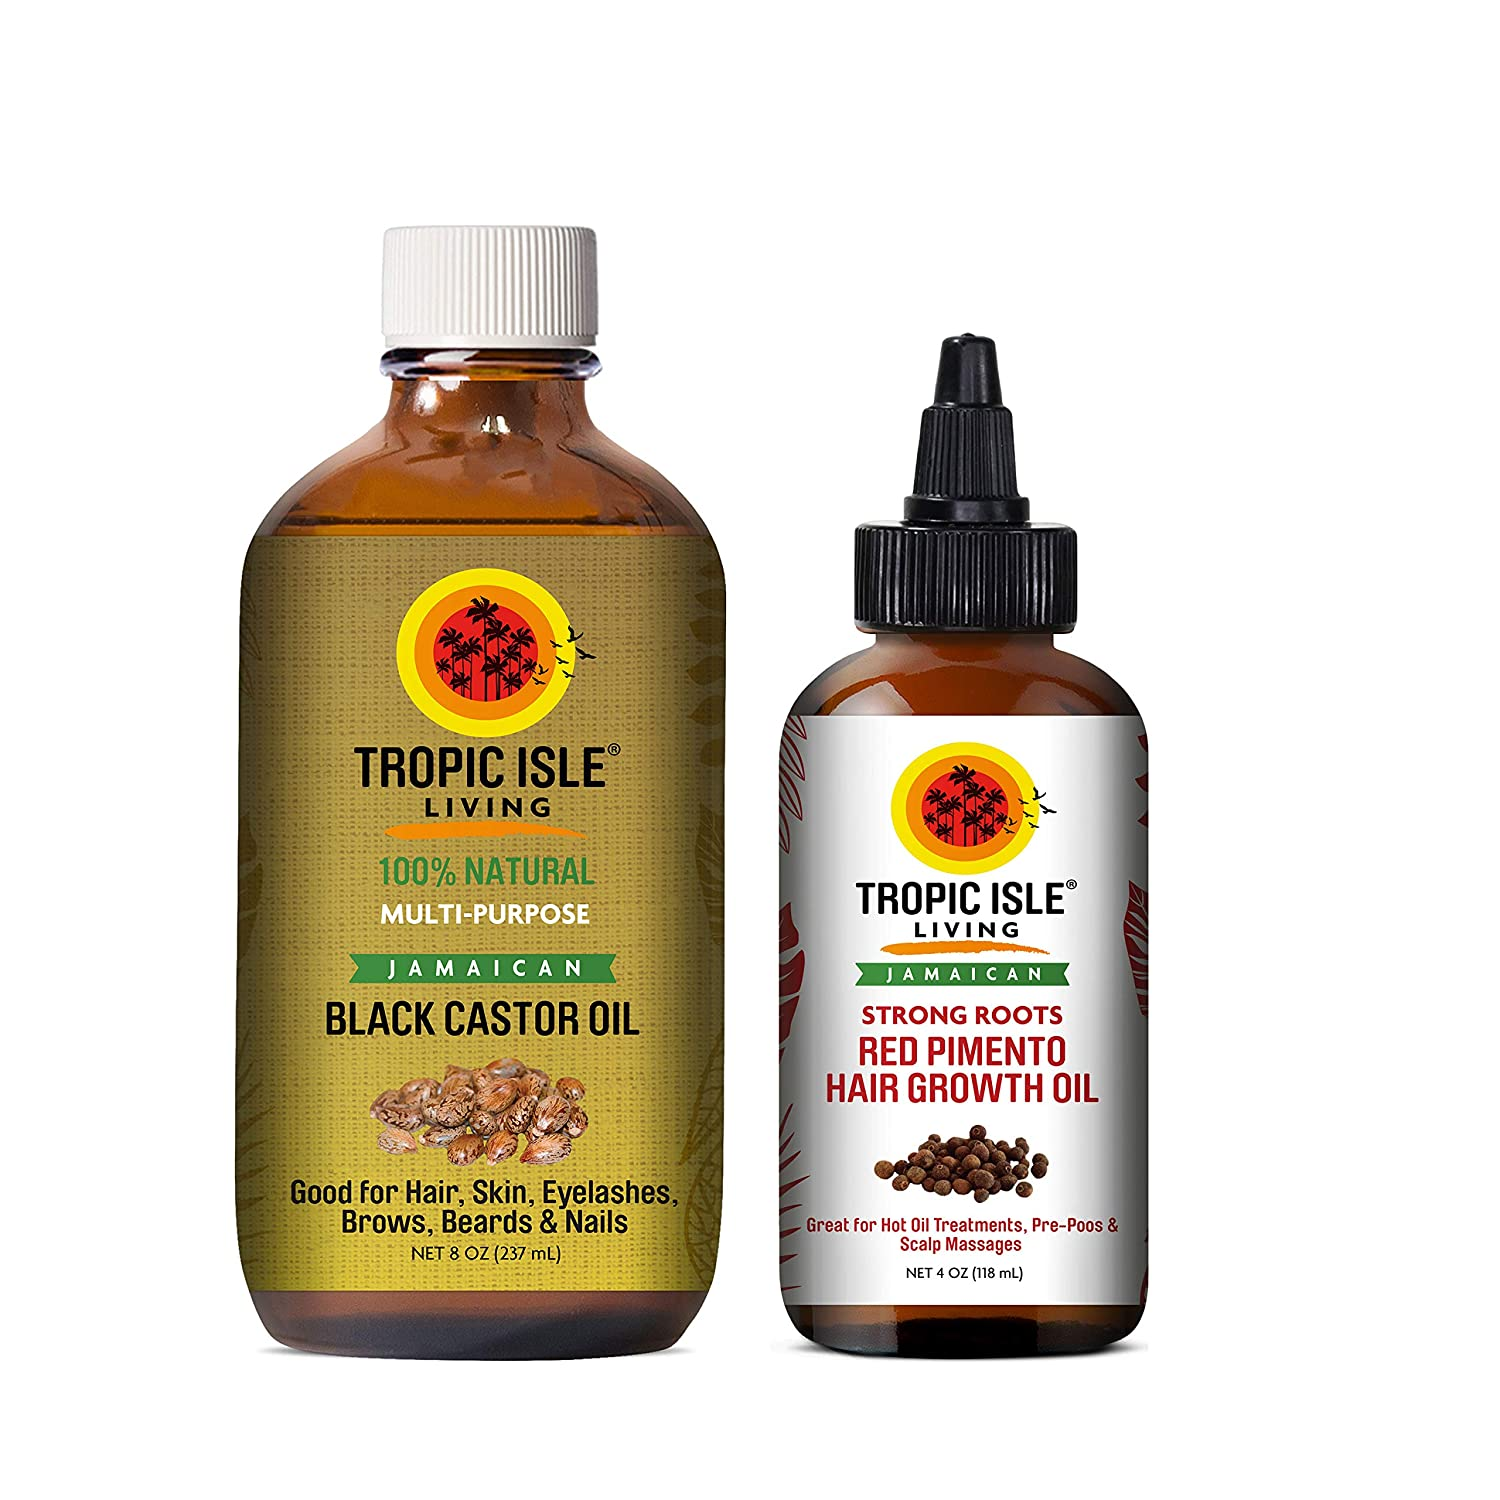 Tropic Isle Living Jamaican Black Castor Oil 8oz & Strong Roots Red Pimento Hair Growth Oil 4oz SET